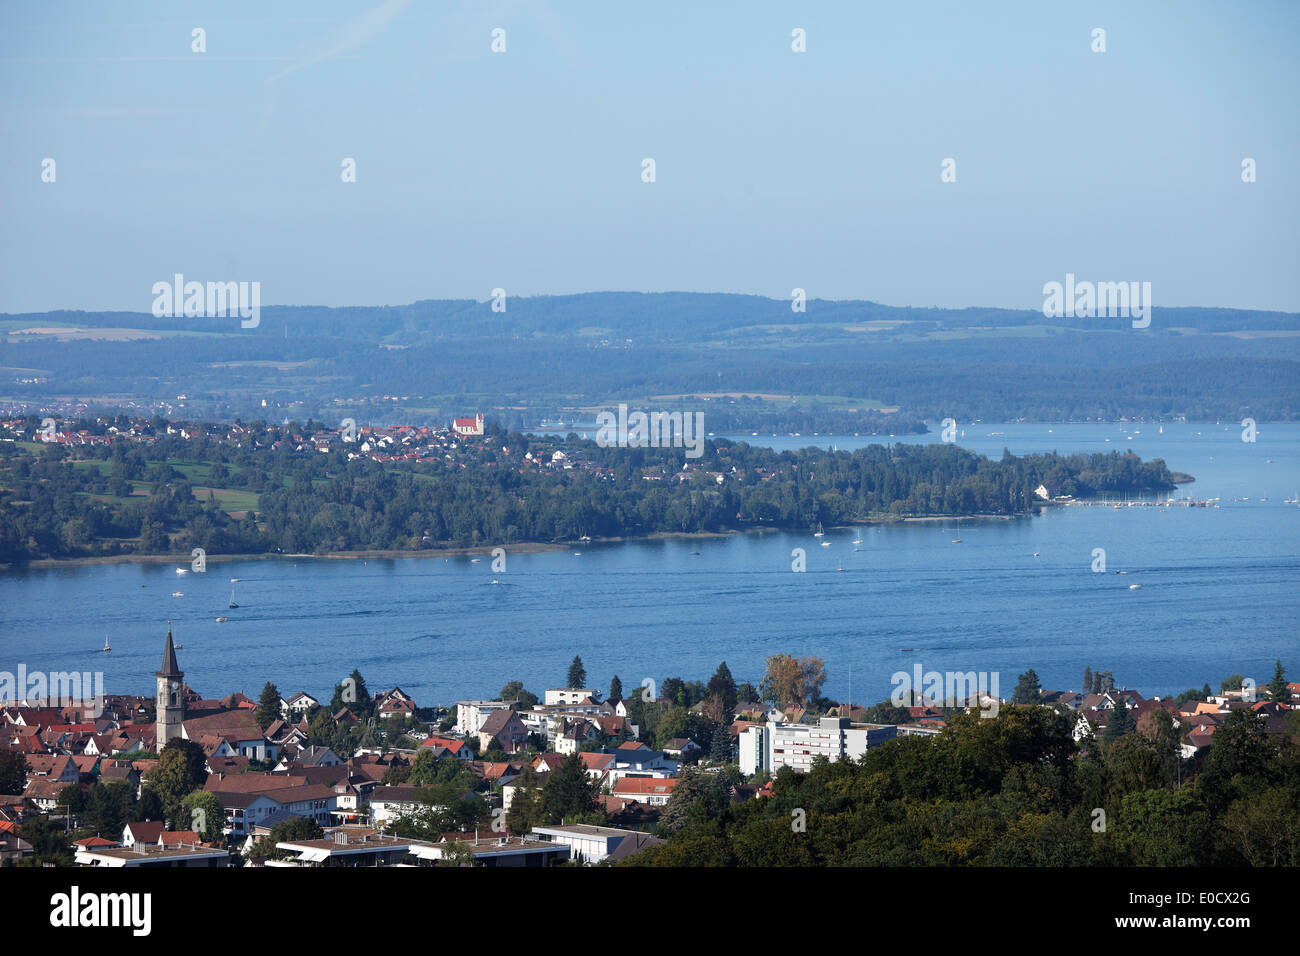 View to Hoeri, Horn over Steckborn, Lake of Constance, Canton Thurgau, Switzerland - Stock Image